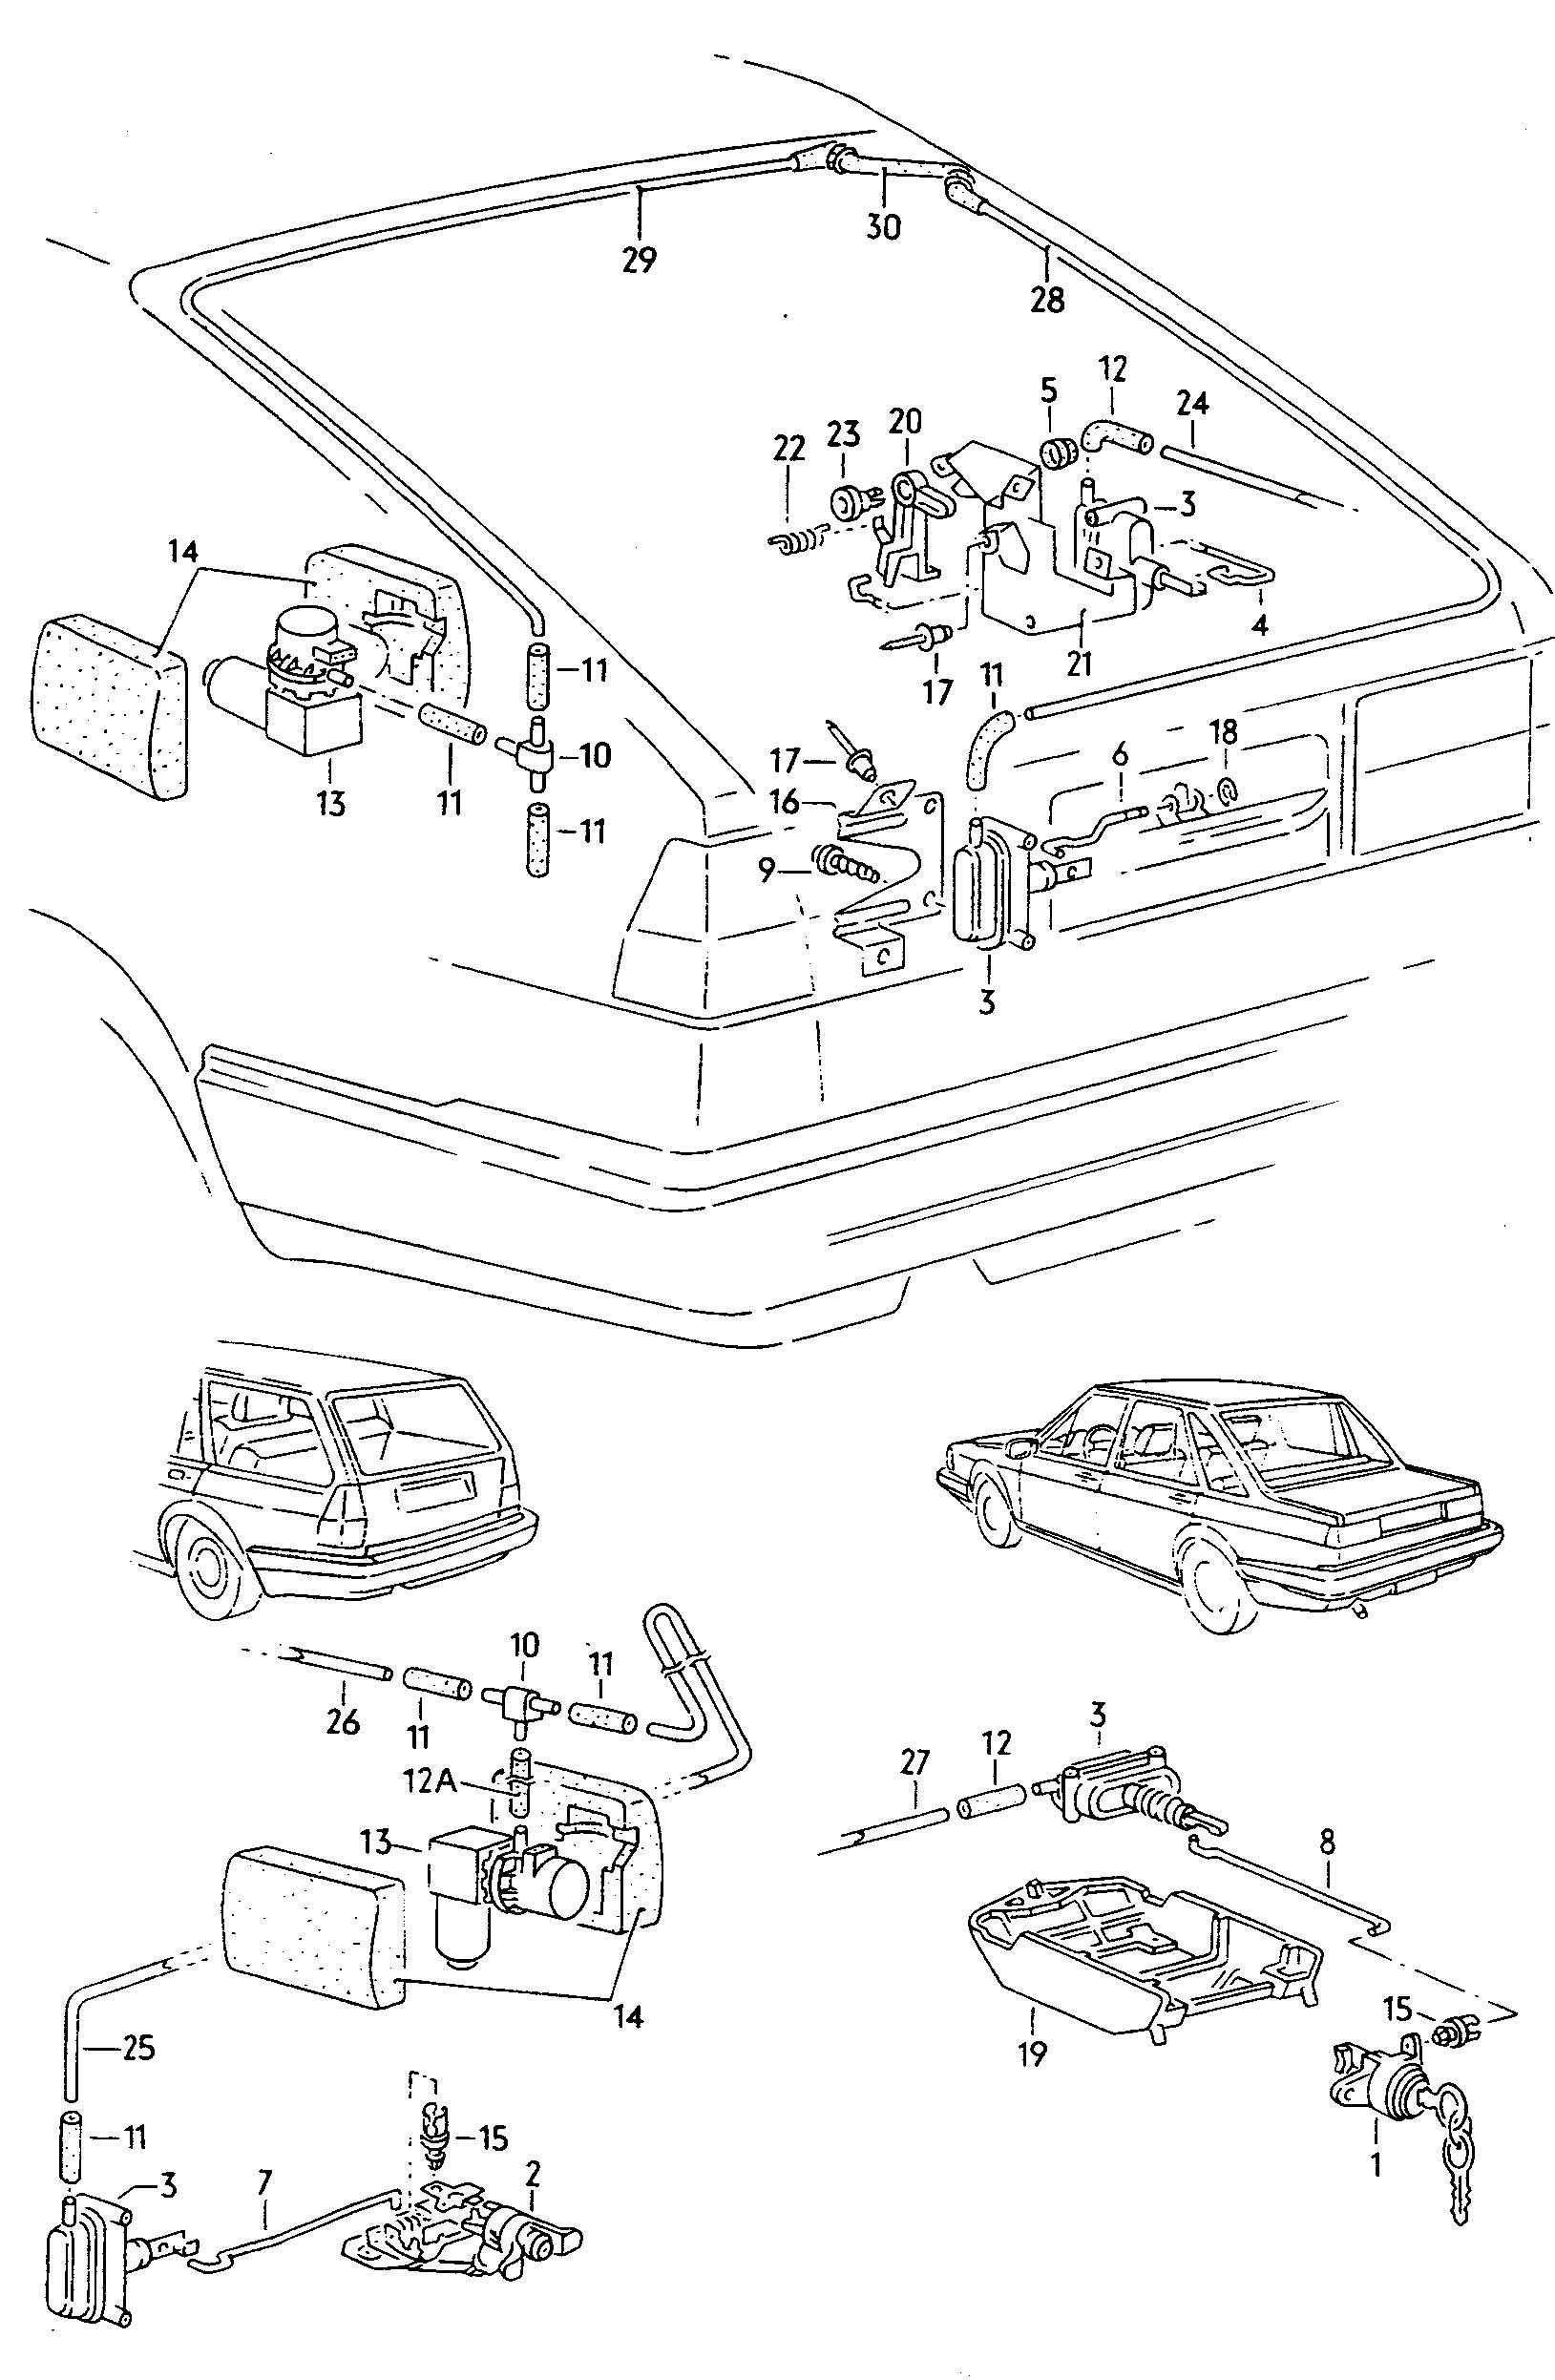 Volkswagen Quantum Syncro For Vehicles With Central